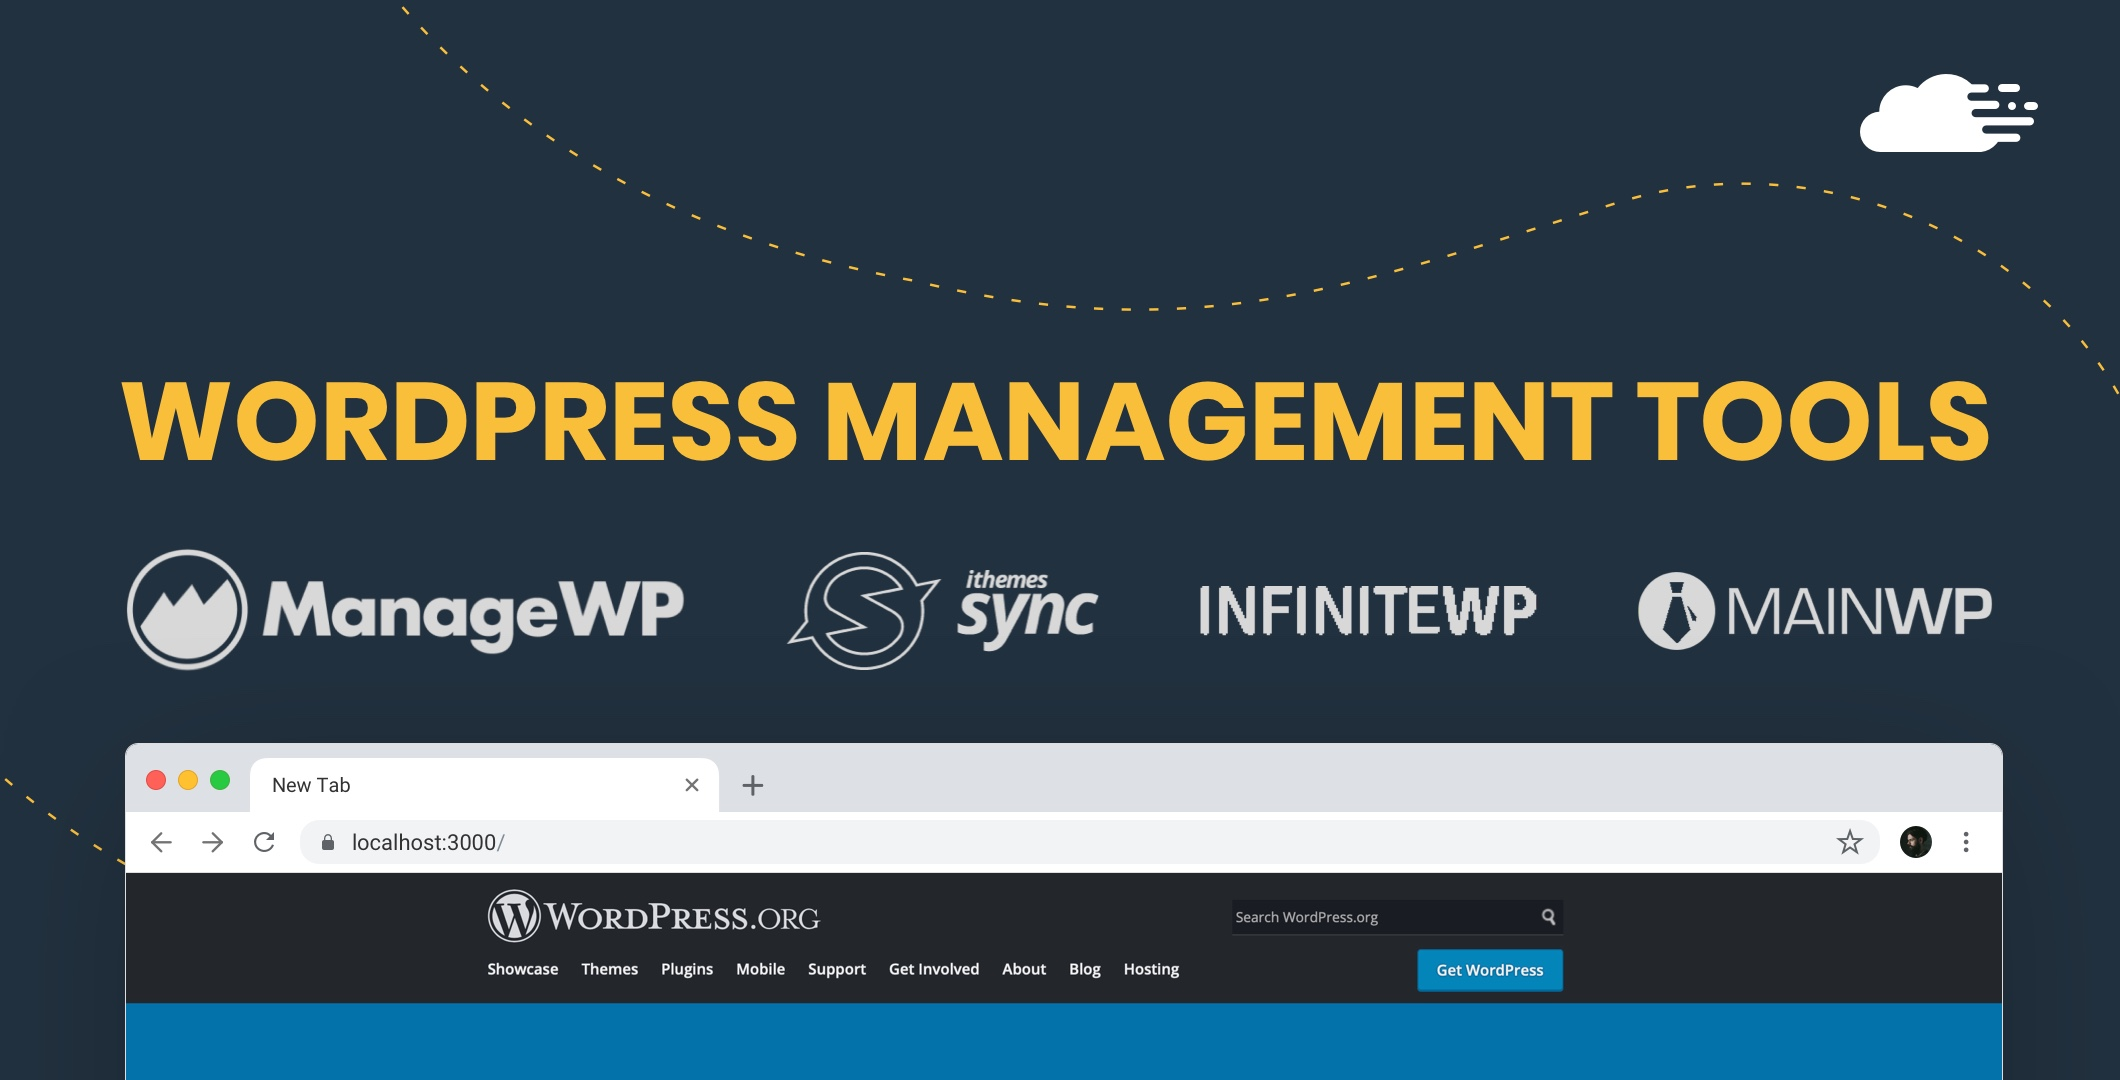 wordpress management tools